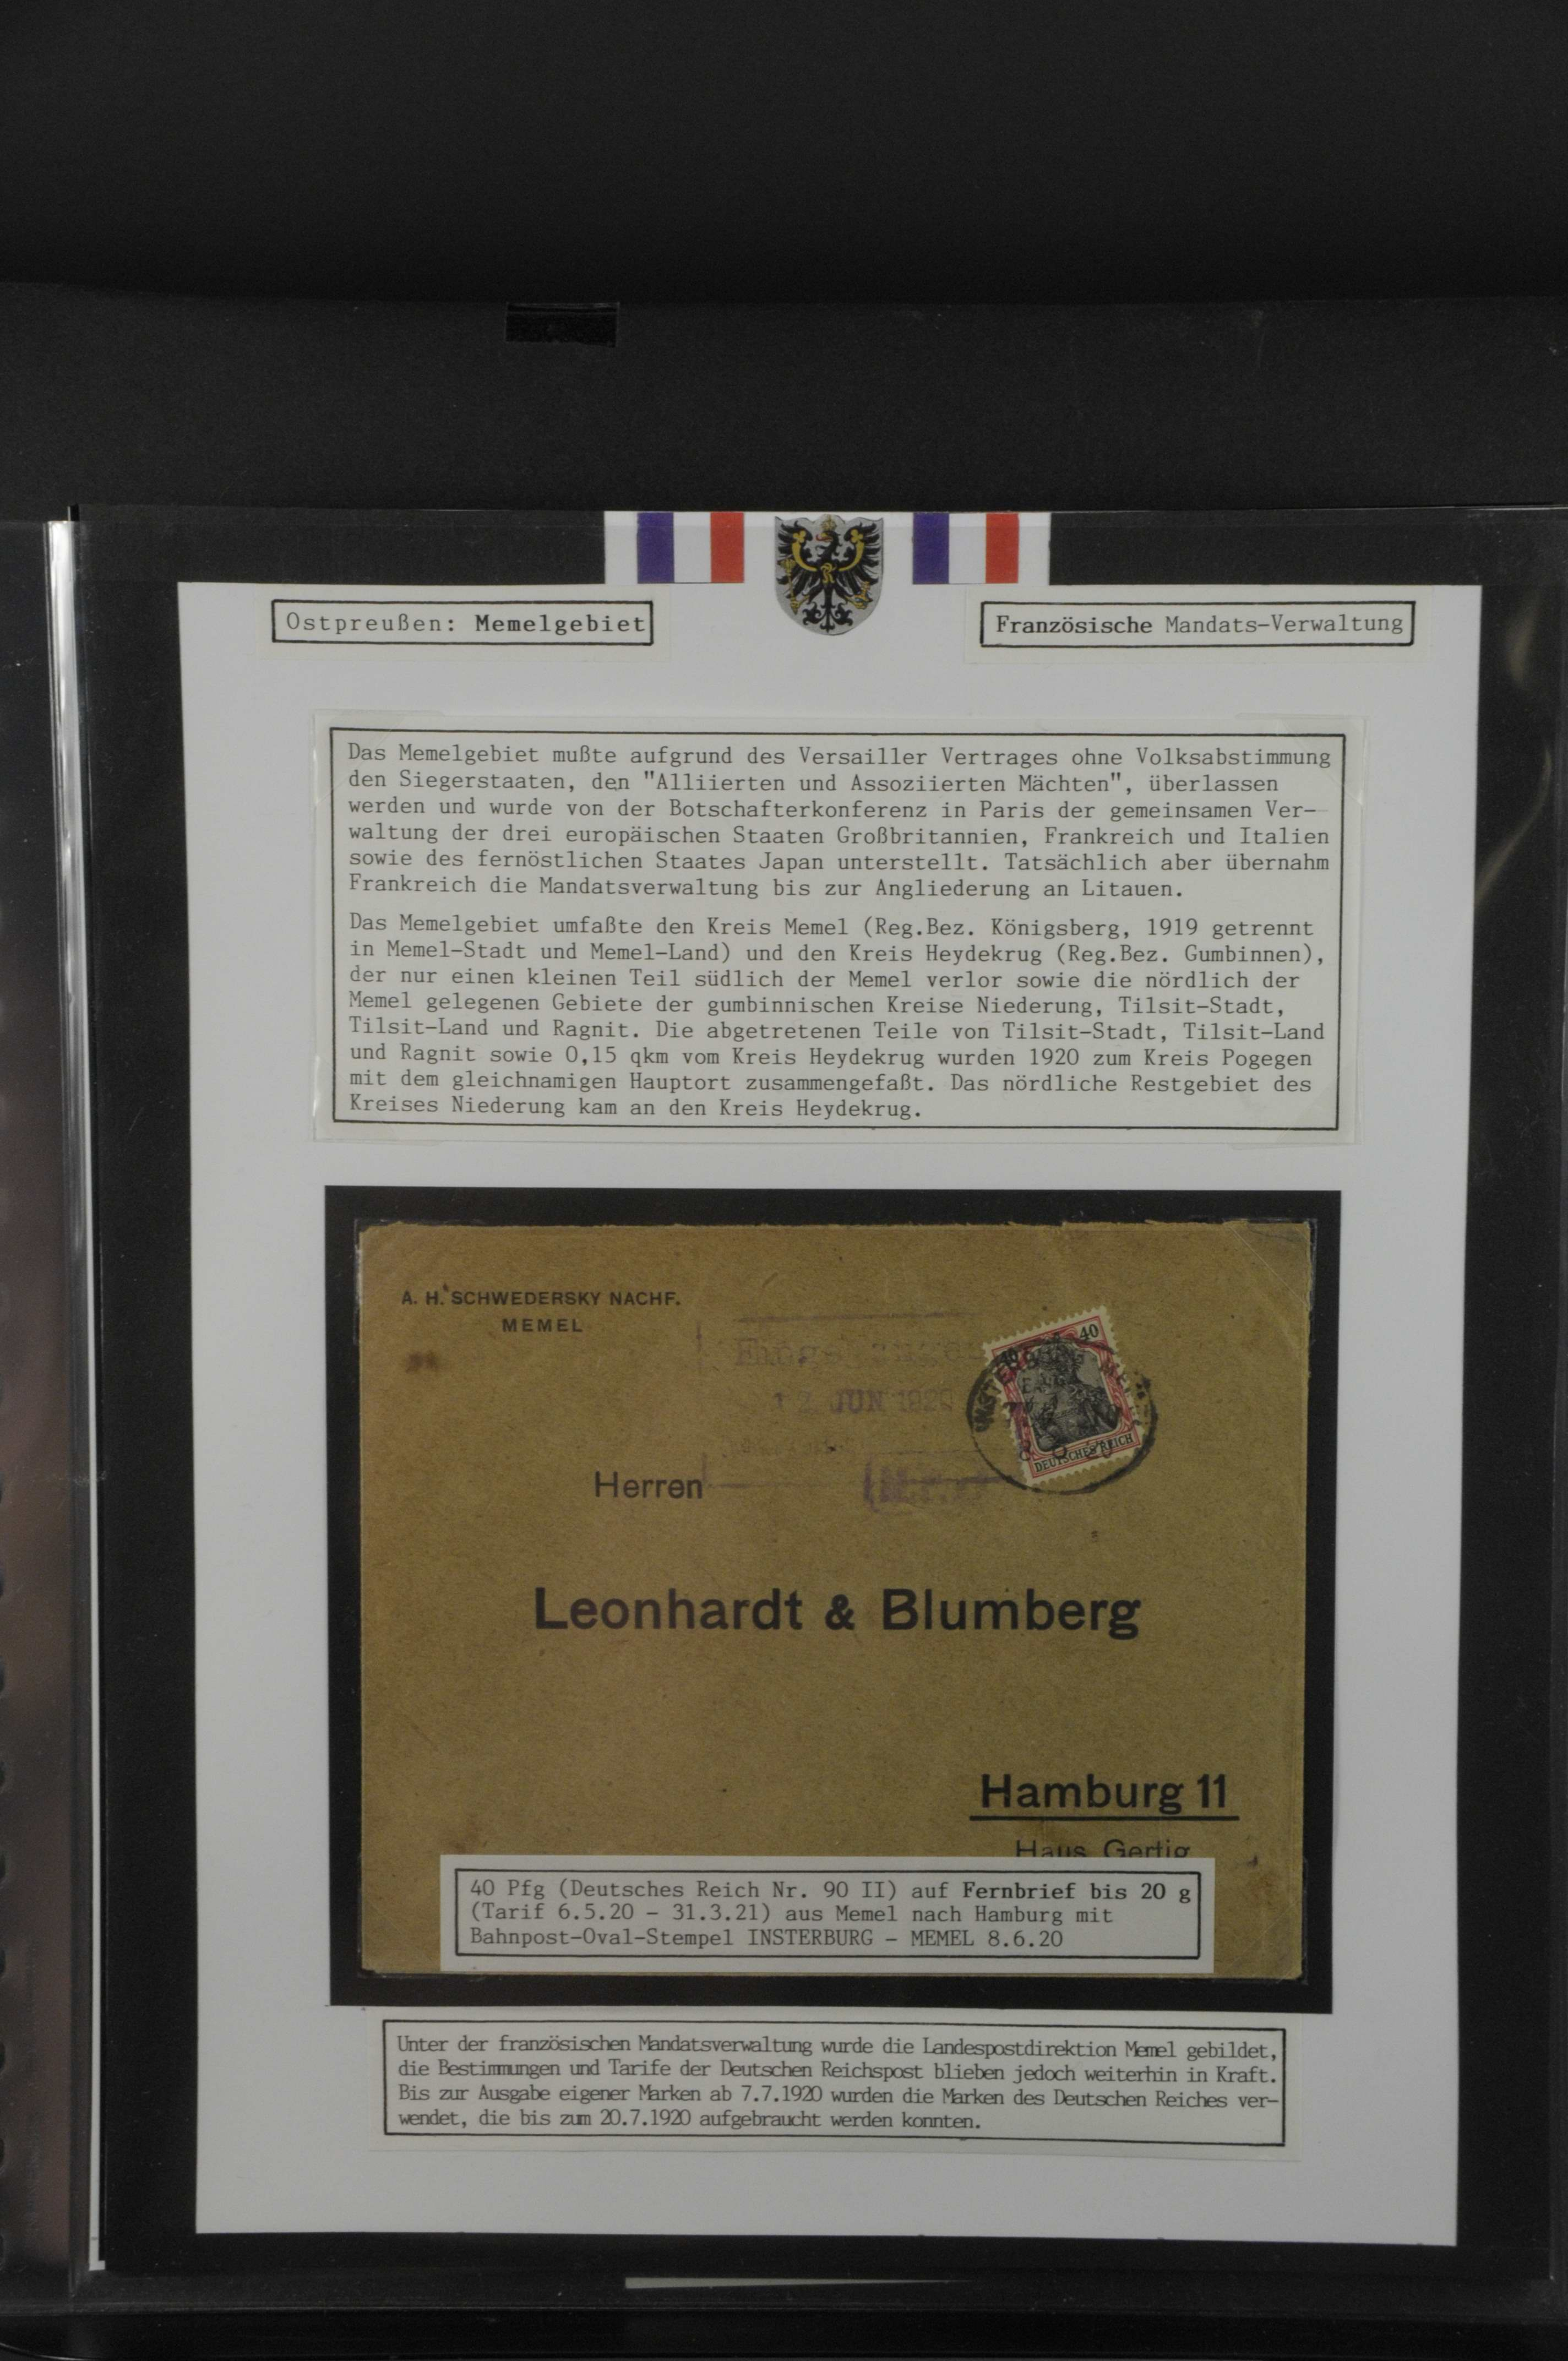 Lot 8008 - Memel Markenausgaben -  Auktionshaus Ulrich Felzmann GmbH & Co. KG Auction 165   Philately, Airmail, Zeppelinmail and Astrophilately, international,  German and collections.